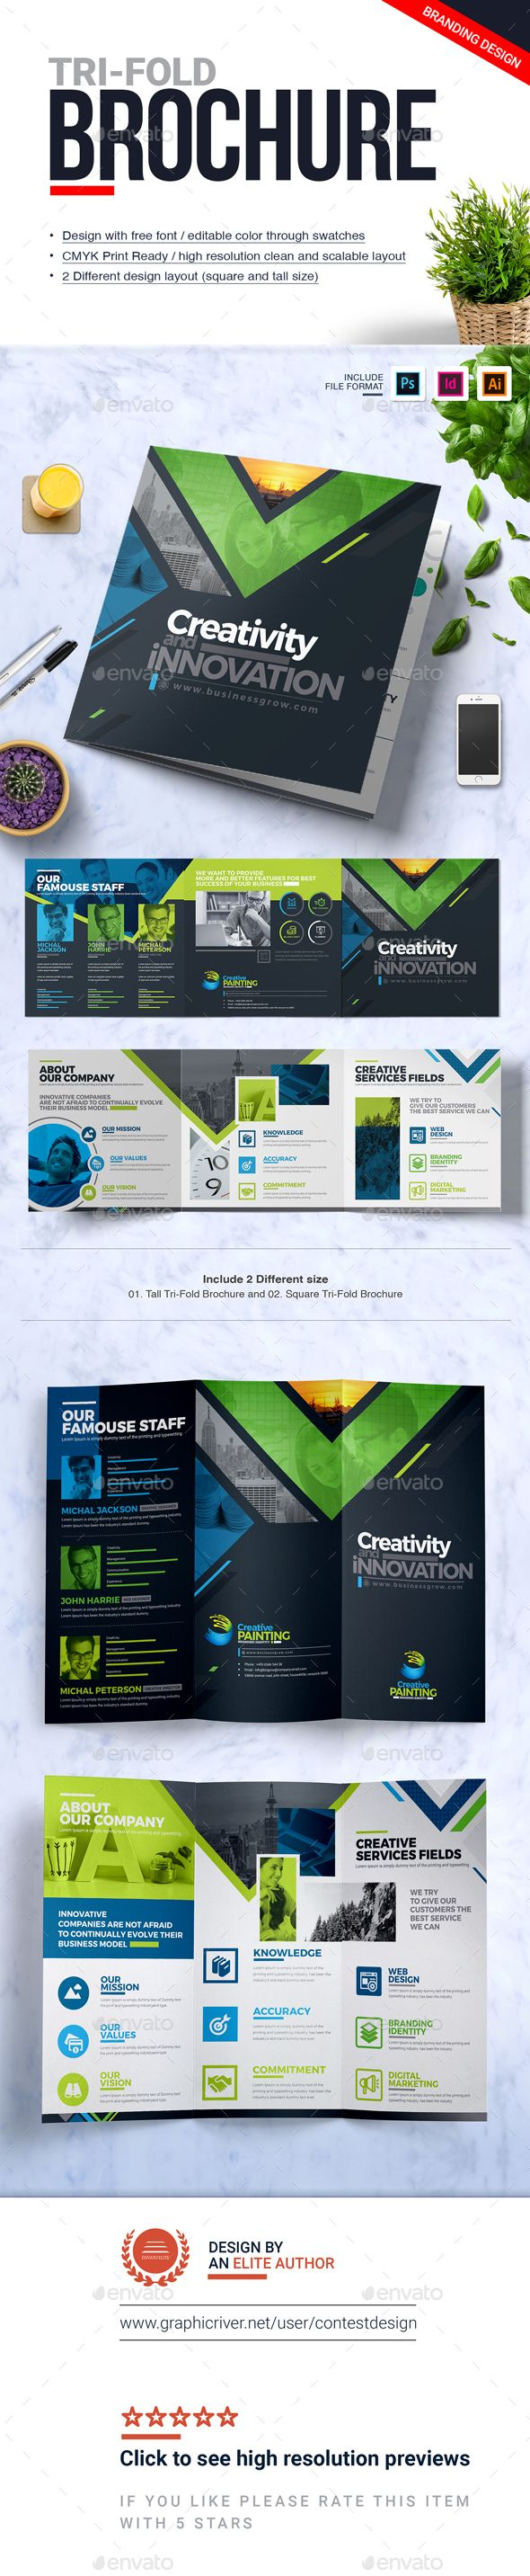 Tri-Fold Brochure | Square and Tall Brochure Design Template